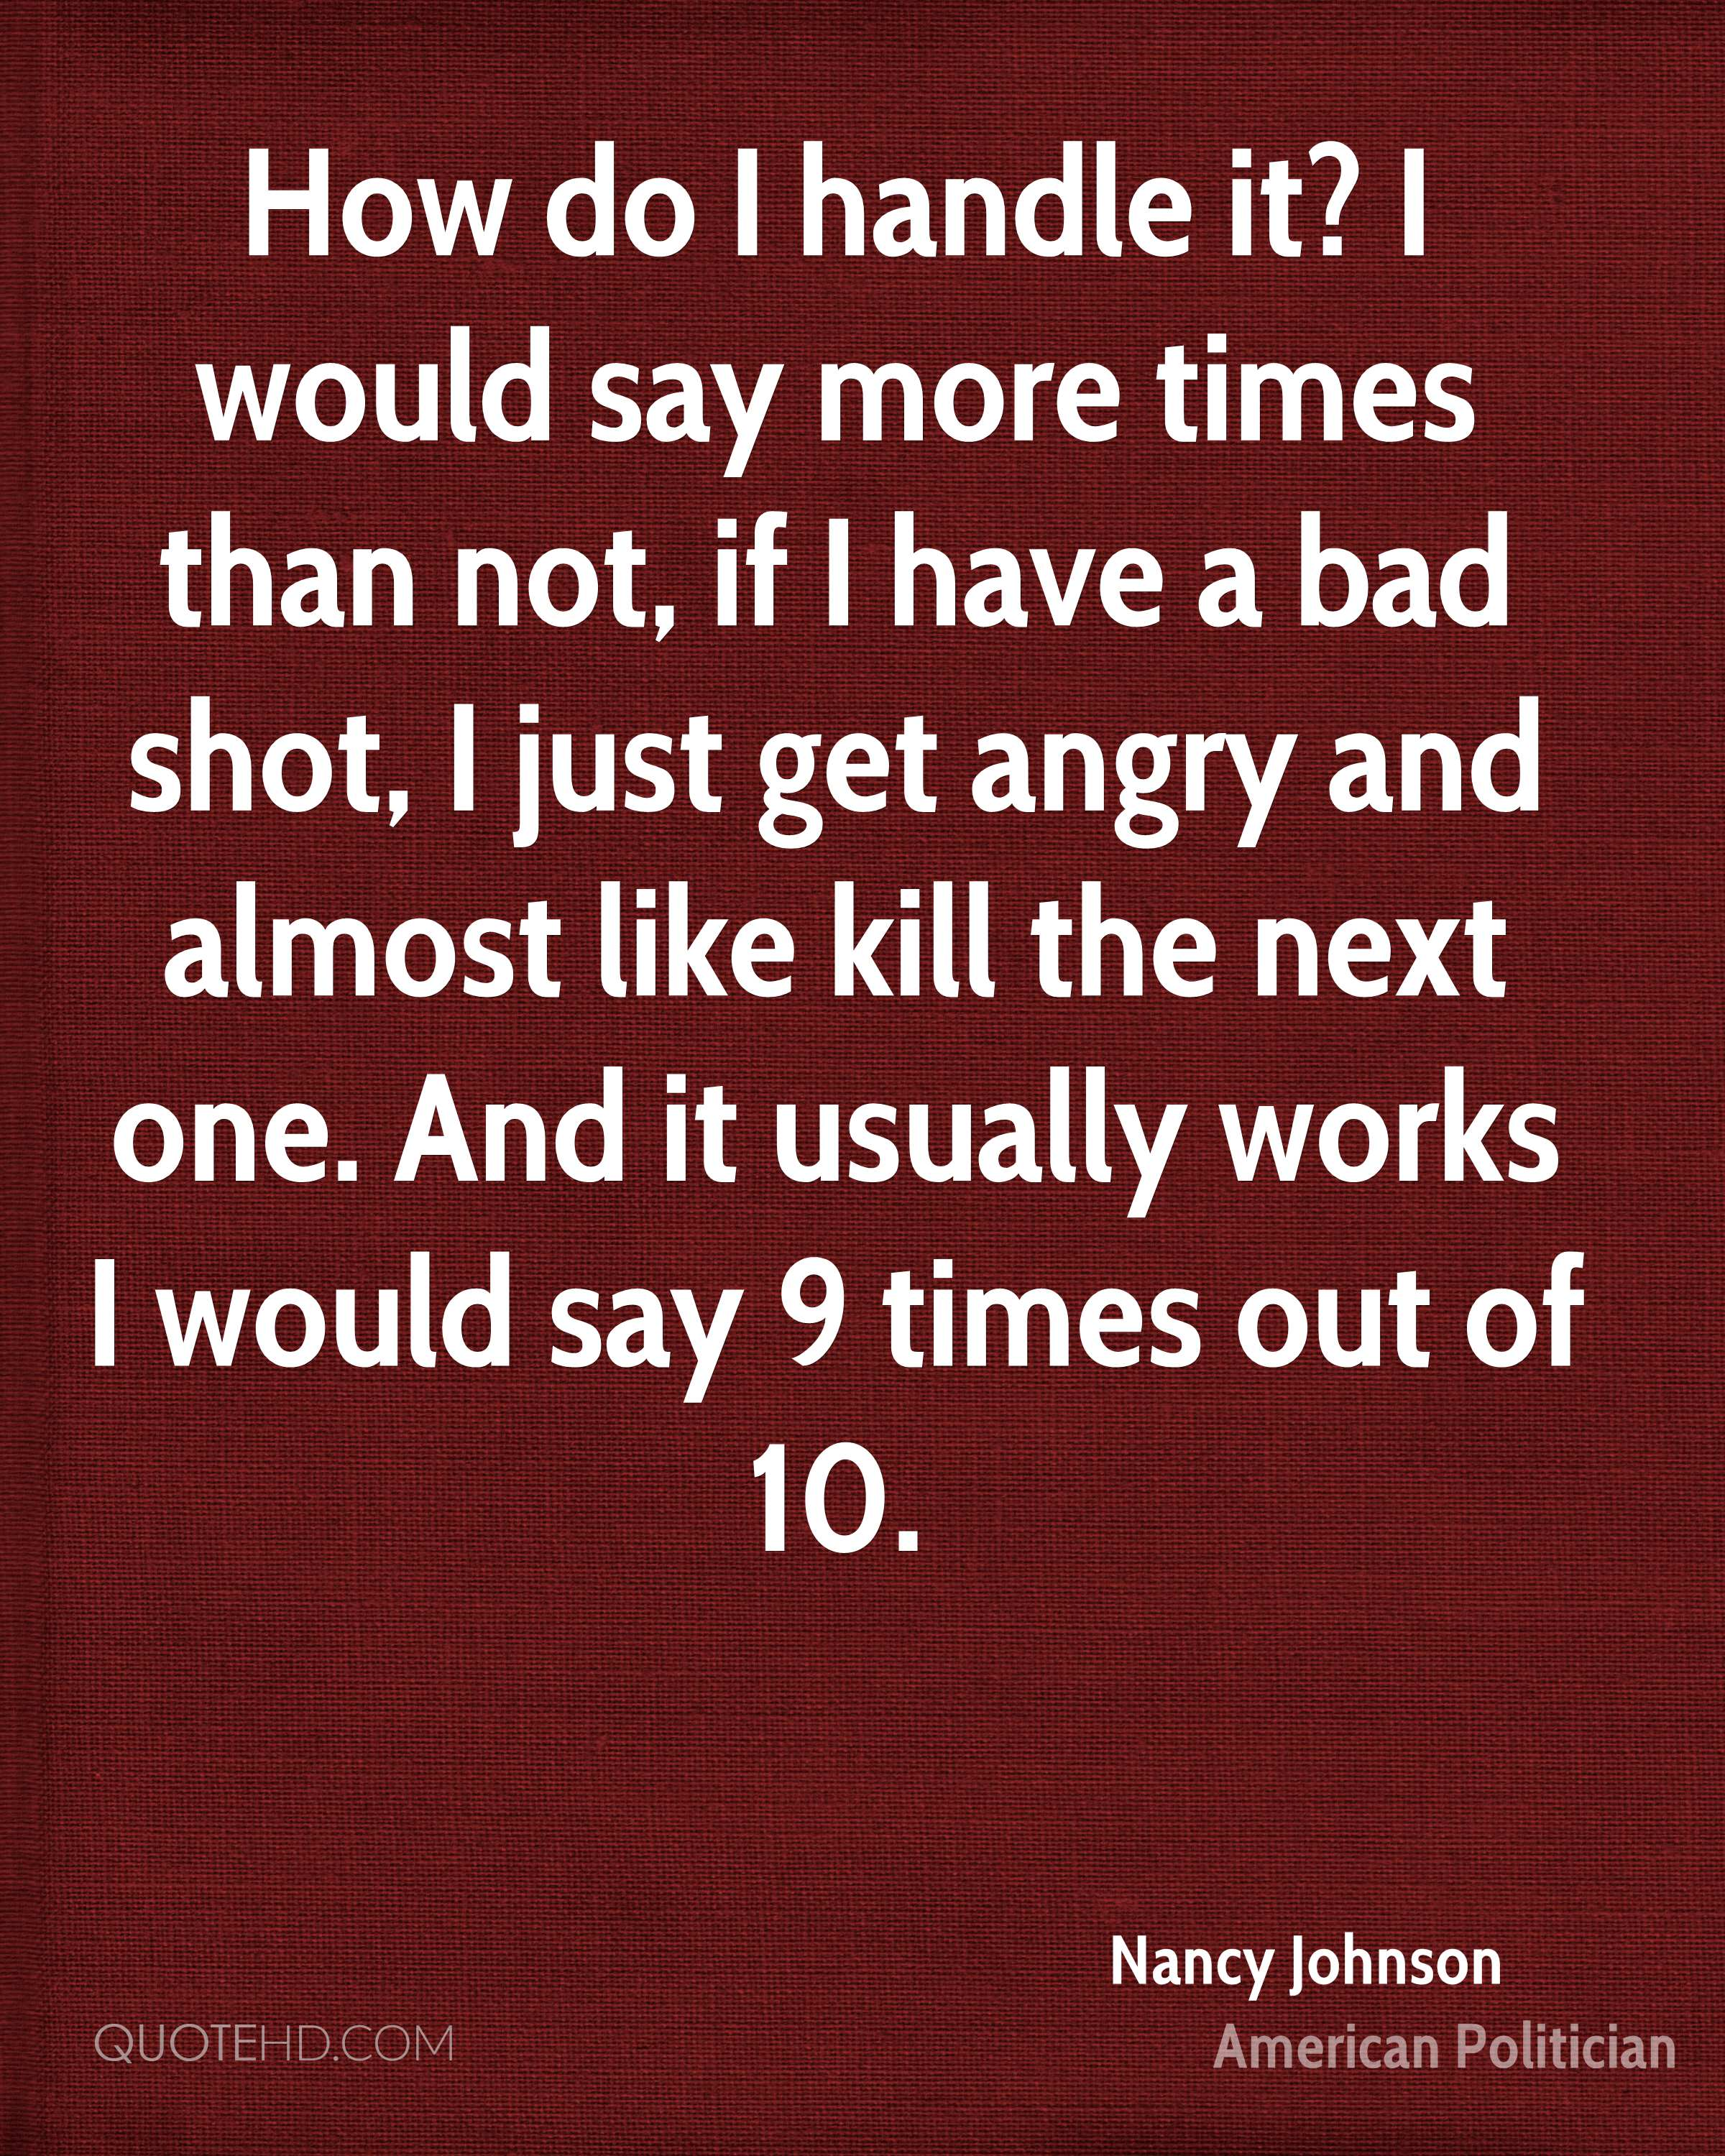 How do I handle it? I would say more times than not, if I have a bad shot, I just get angry and almost like kill the next one. And it usually works I would say 9 times out of 10.